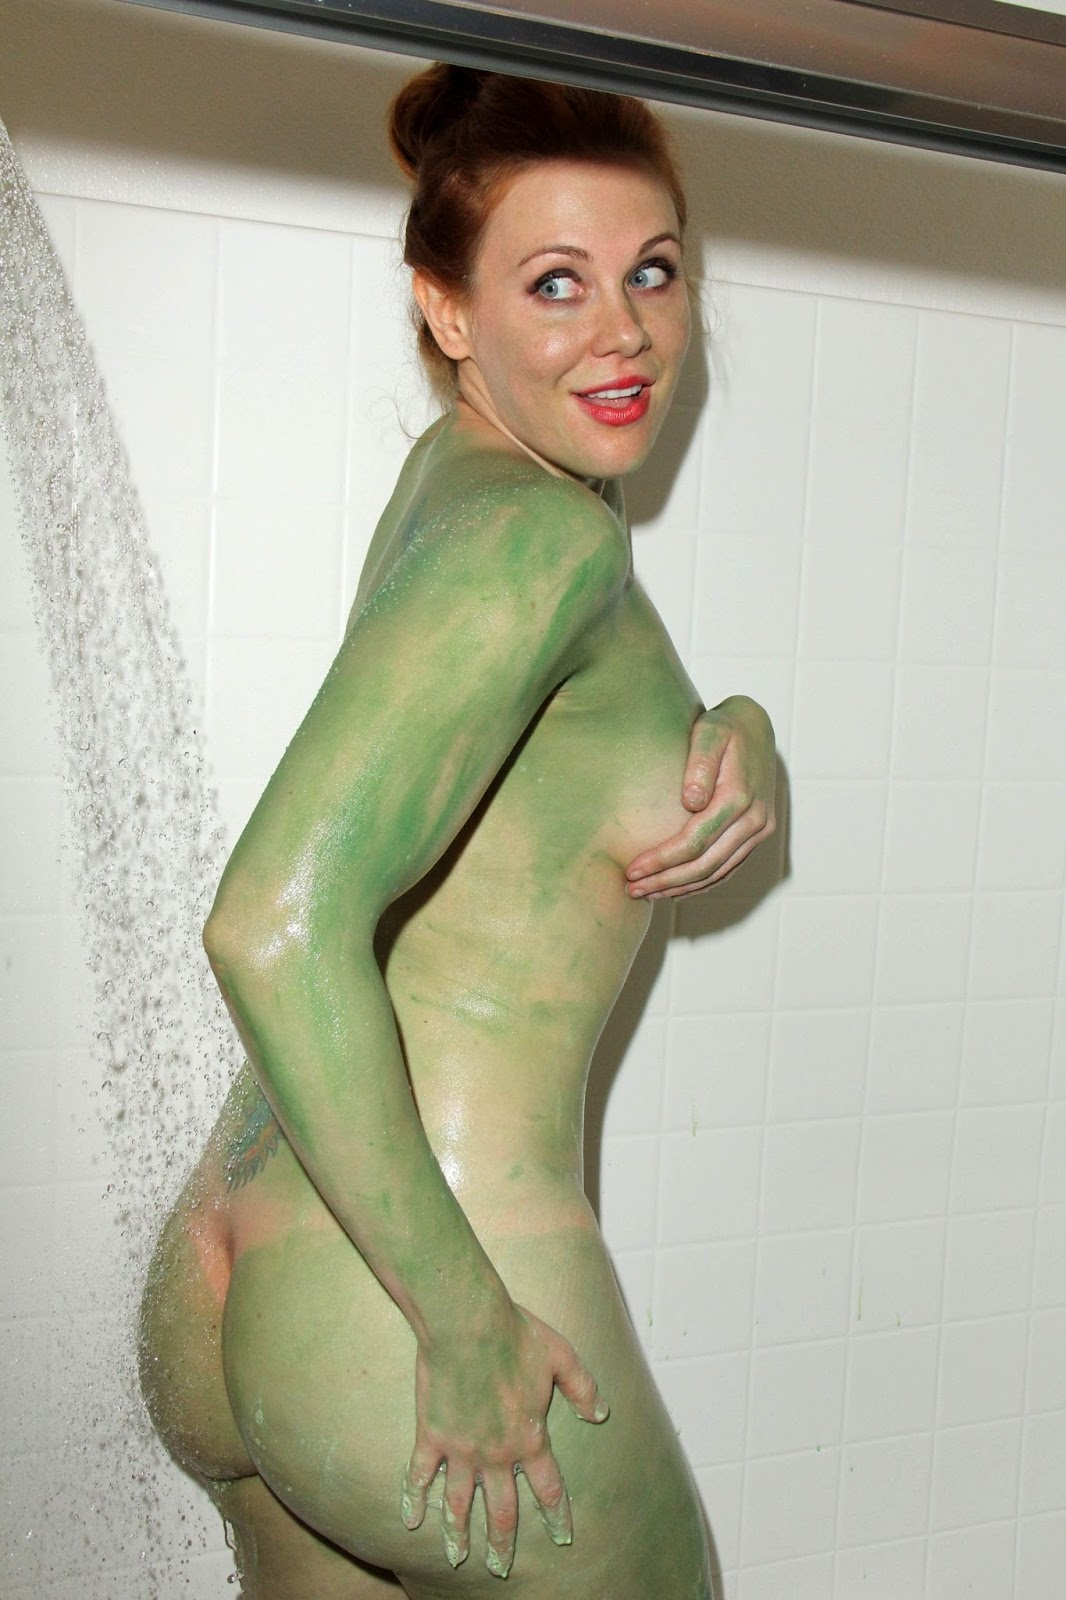 girls in sexy costumes nude